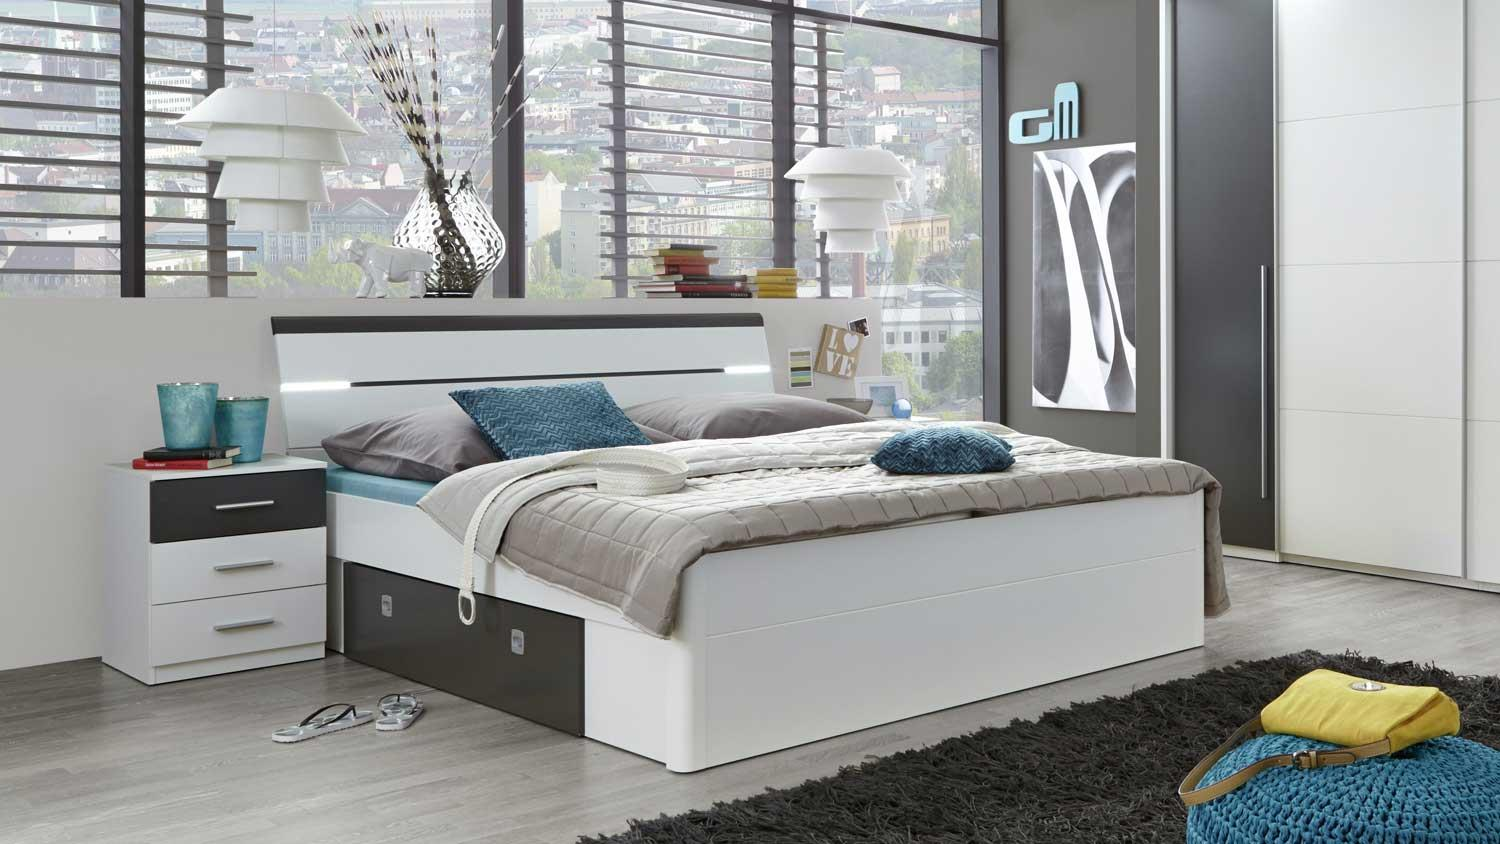 bettanlage mars bett nachtkommoden in wei lava kopfteil mit led. Black Bedroom Furniture Sets. Home Design Ideas